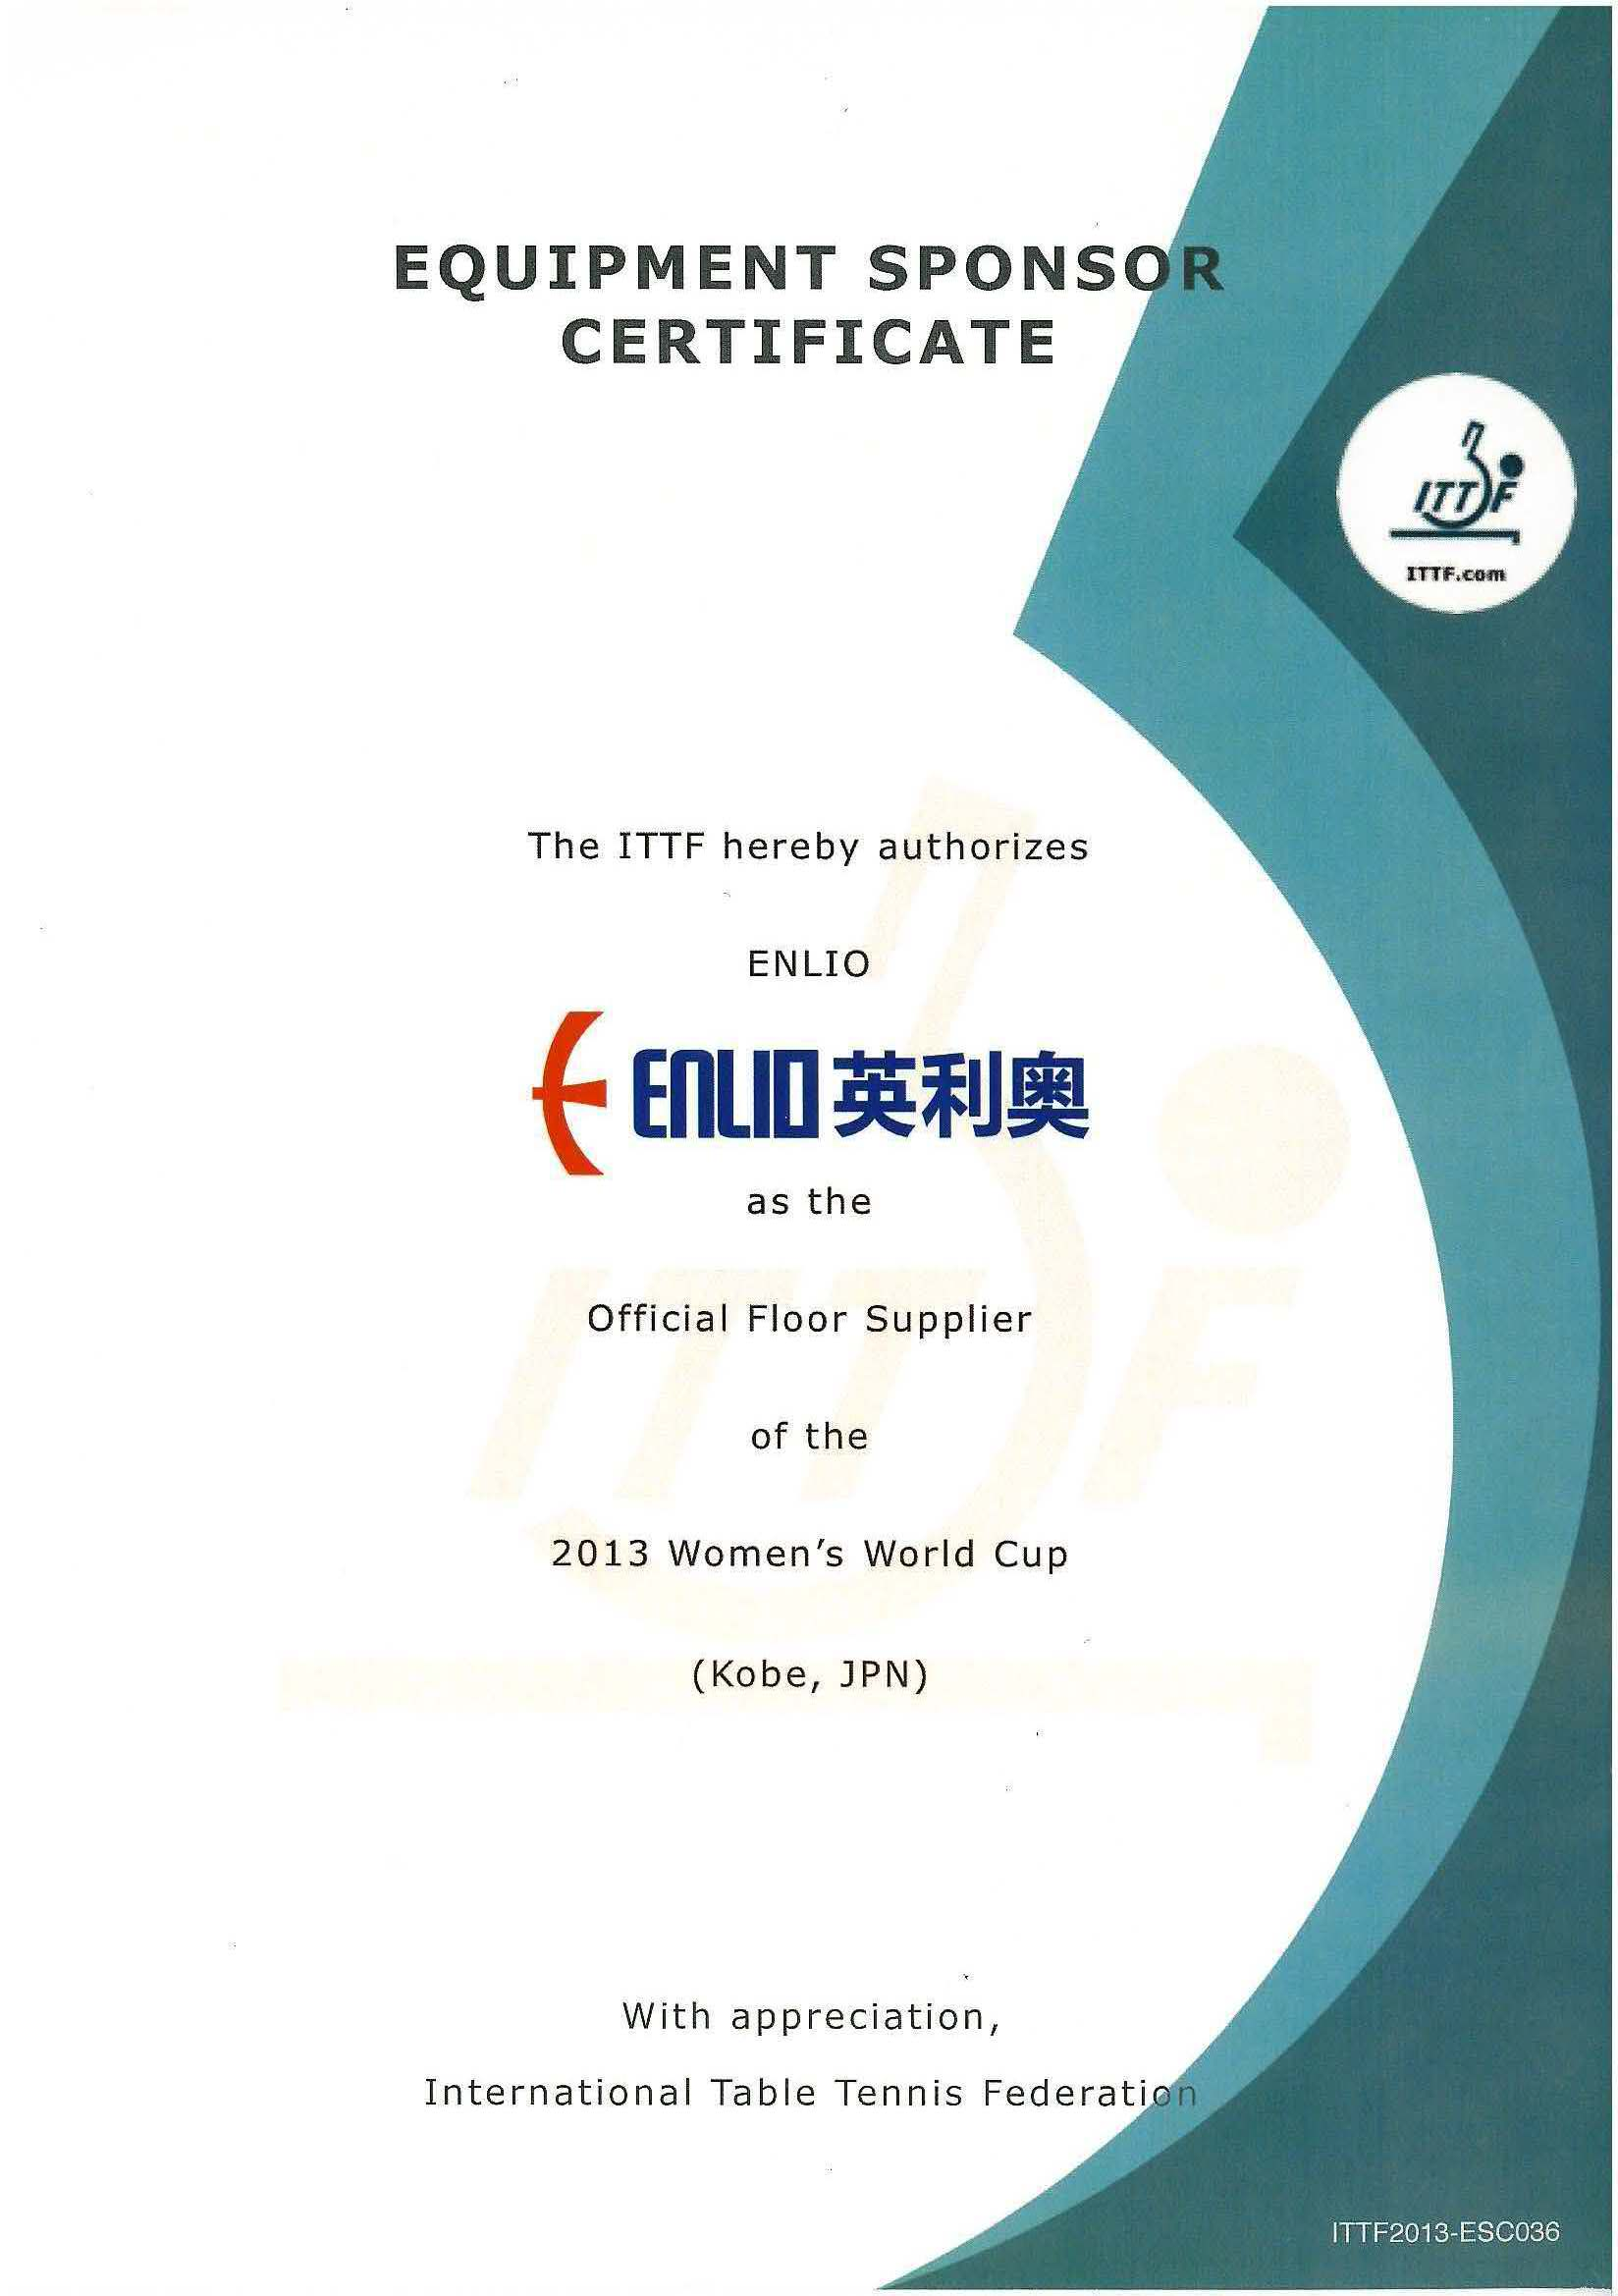 PVC table tennis floor mat with ITTF certificate